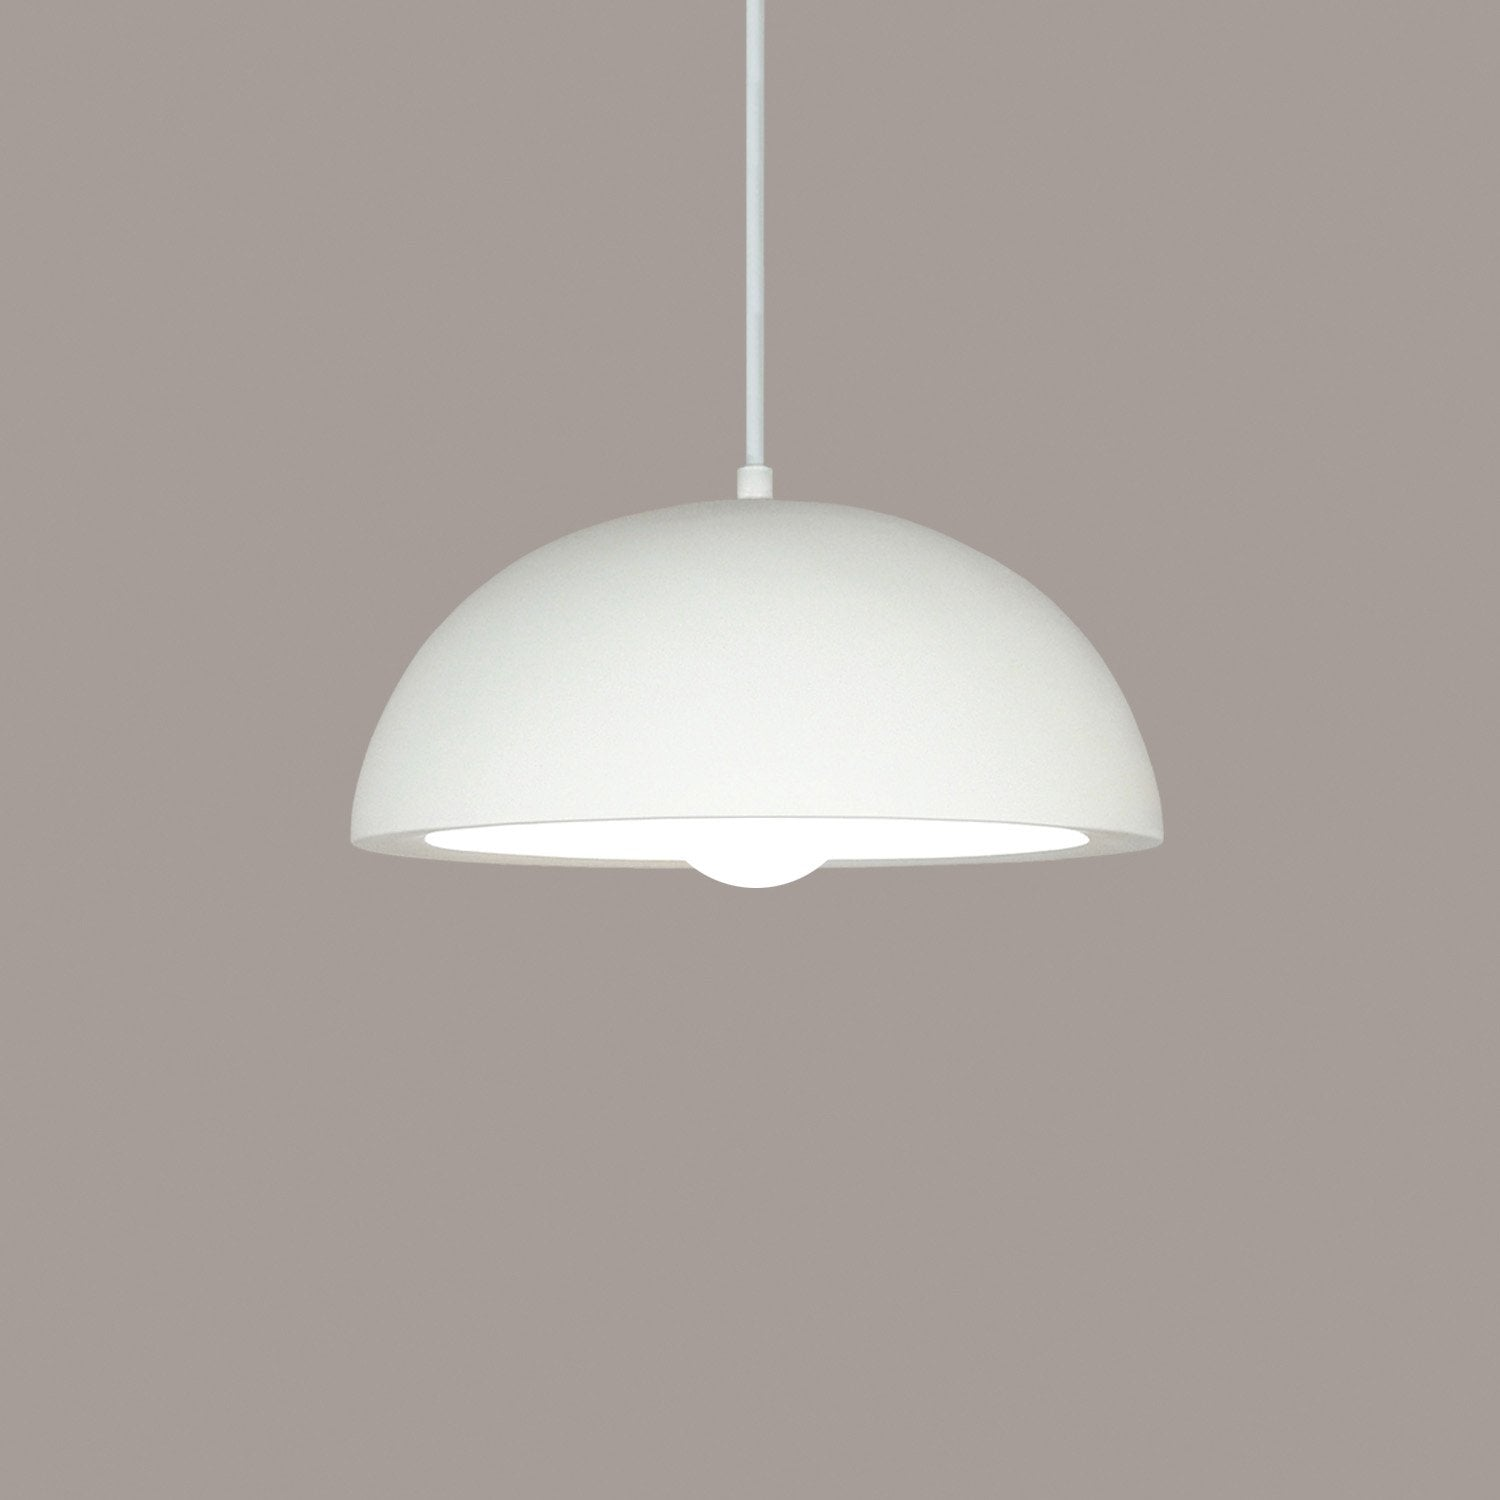 A19 P301-GU24-PS-WCC Islands of Light Collection Thera Pistachio Finish Pendant